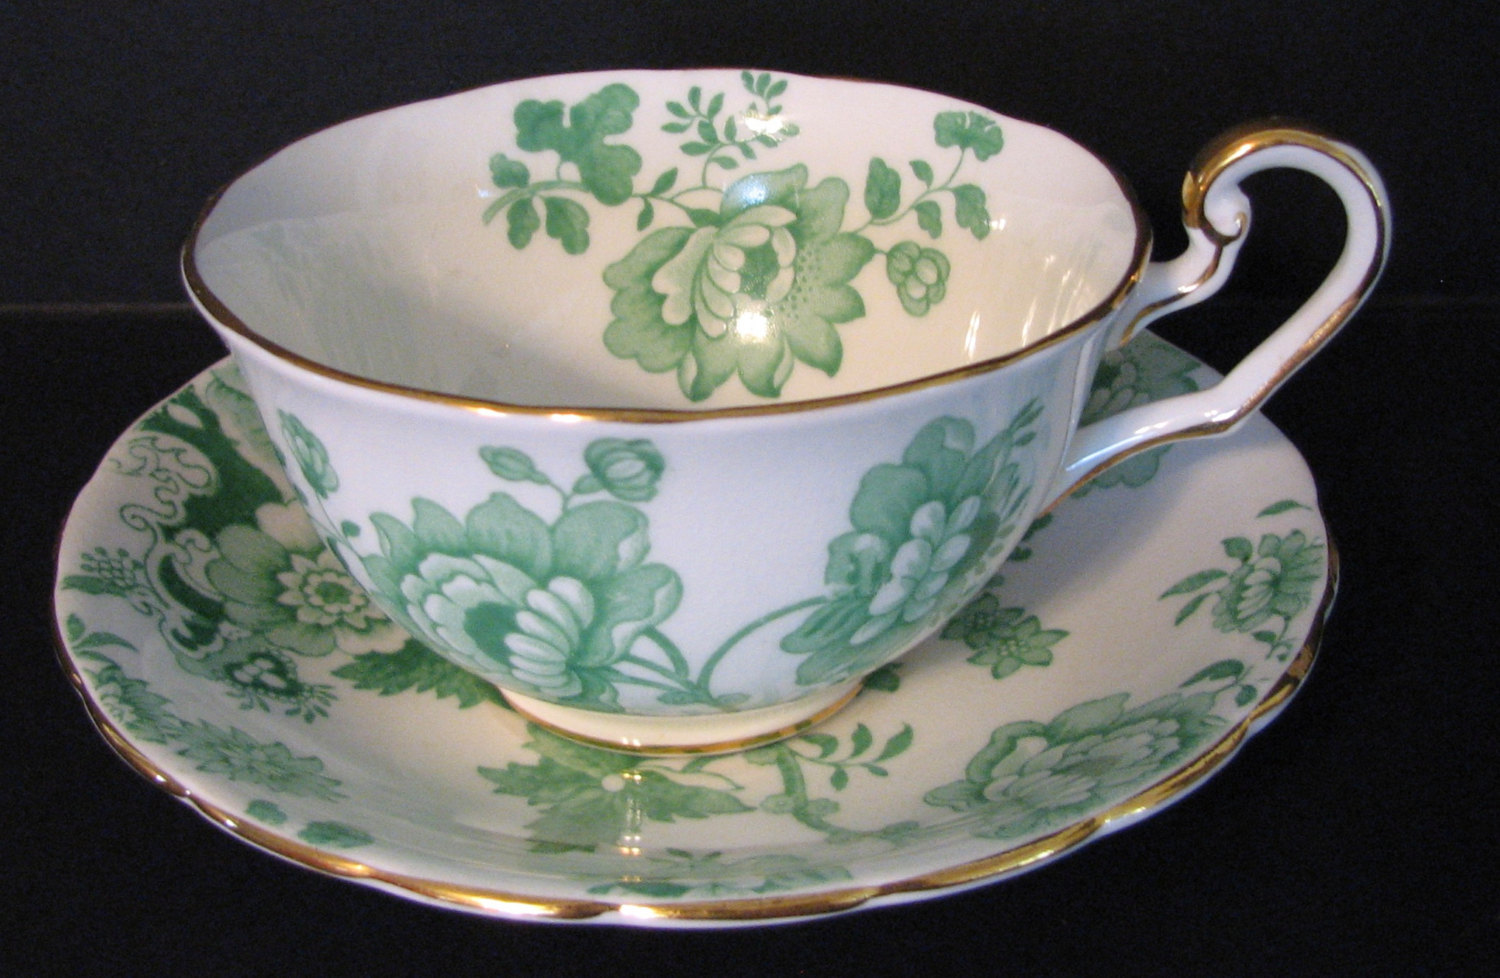 Vintage 1920s Victoria Mandarin Chintz Cup and Saucer Green